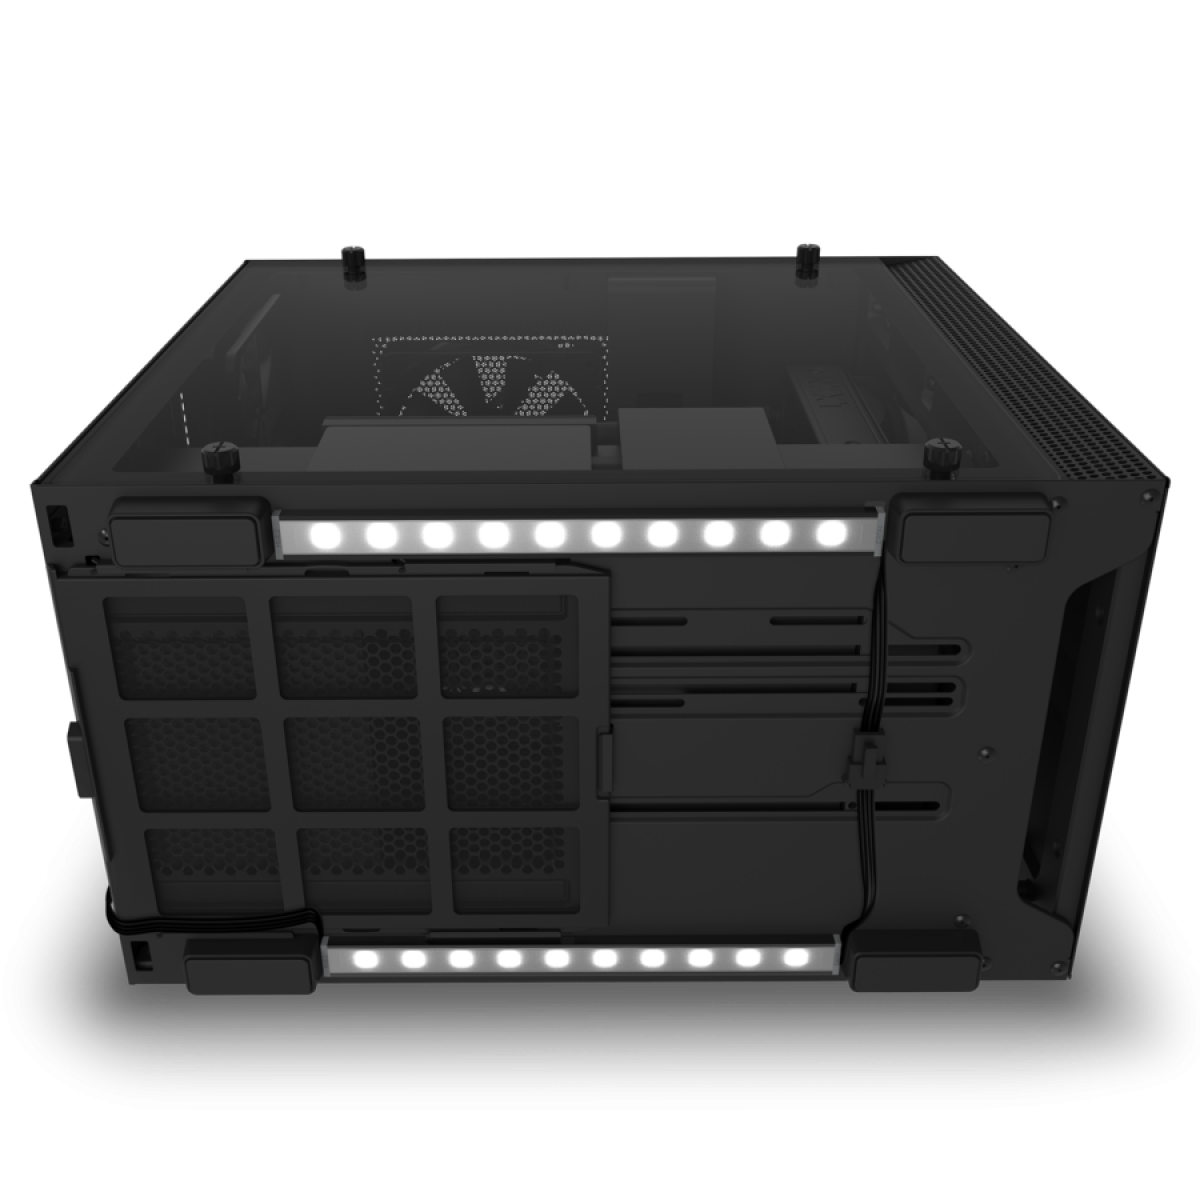 Kit 2 Fitas Led RGB NZXT Underglow Para Gabinete, 200mm, AH-2UGKD-B1